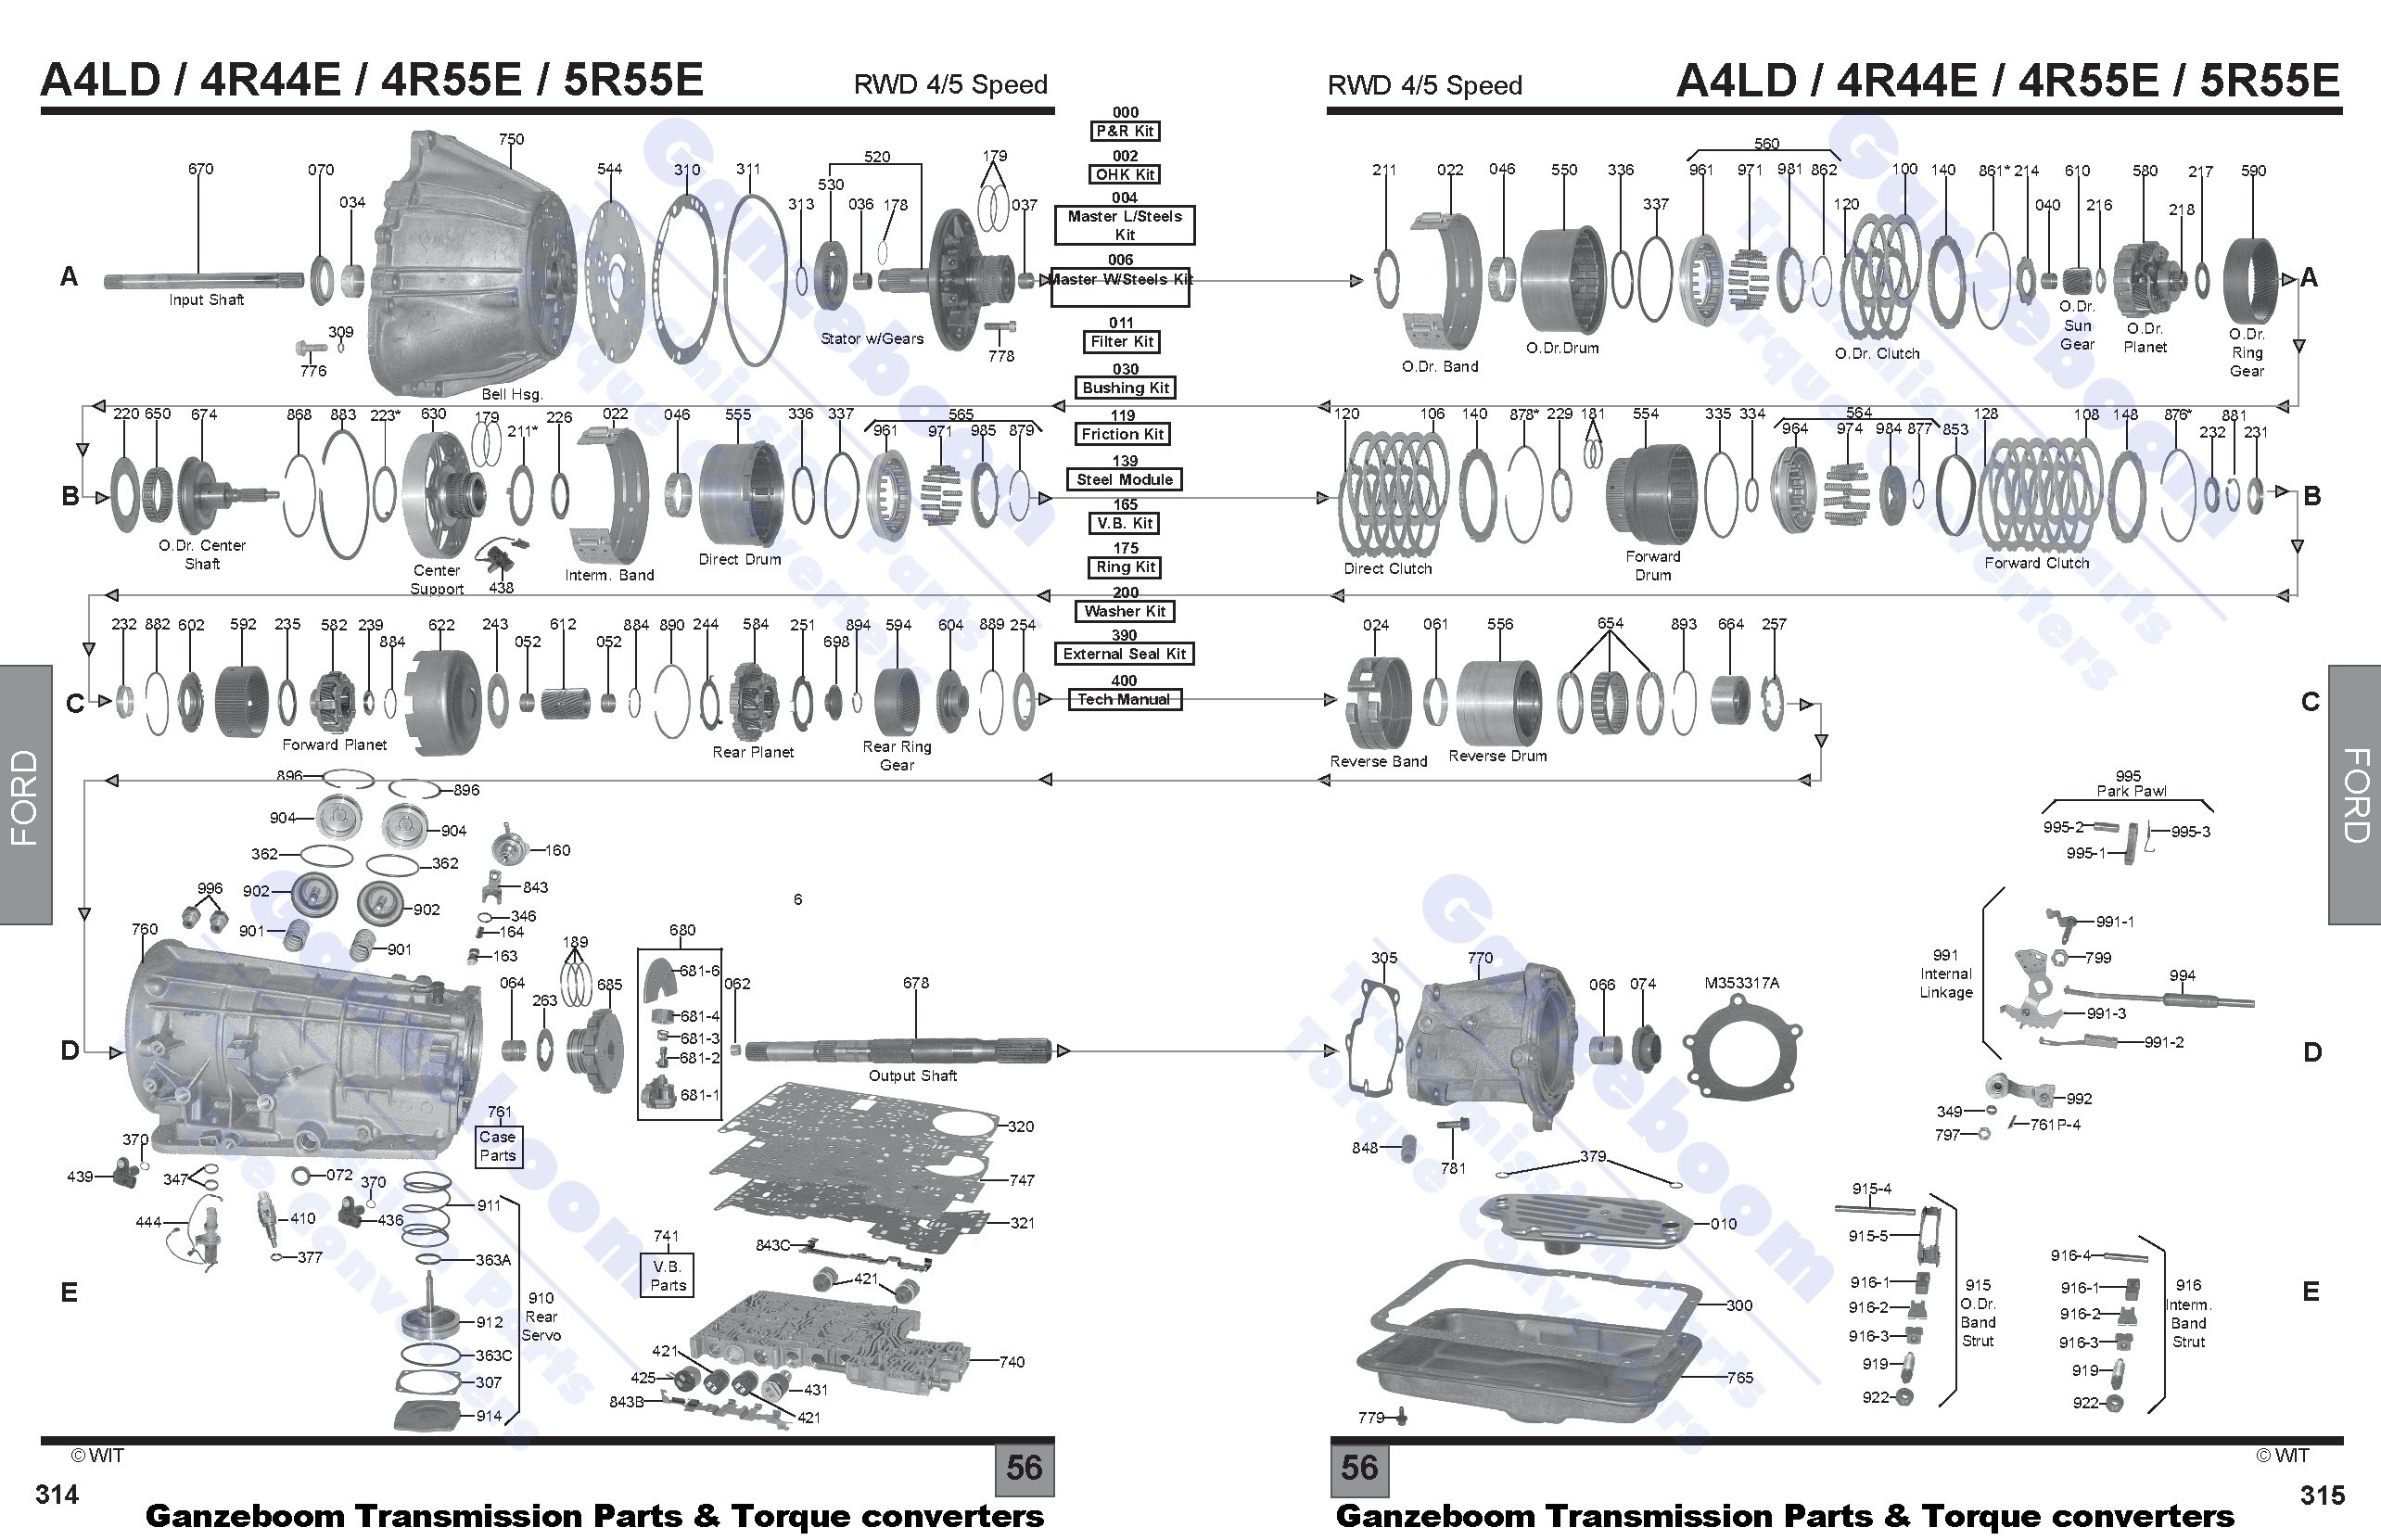 A4ld Automatic Transmission Diagrams - Radio Wiring Diagram • on a4ld transmission connectors, a4ld transmission schematic, a4ld valve schematic, a4ld transmission tools, a4ld transmission cooling diagram, a4ld transmission troubleshooting, a4ld transmission overhaul diagrams, a4ld transmission parts, a4ld transmission exploded view case,